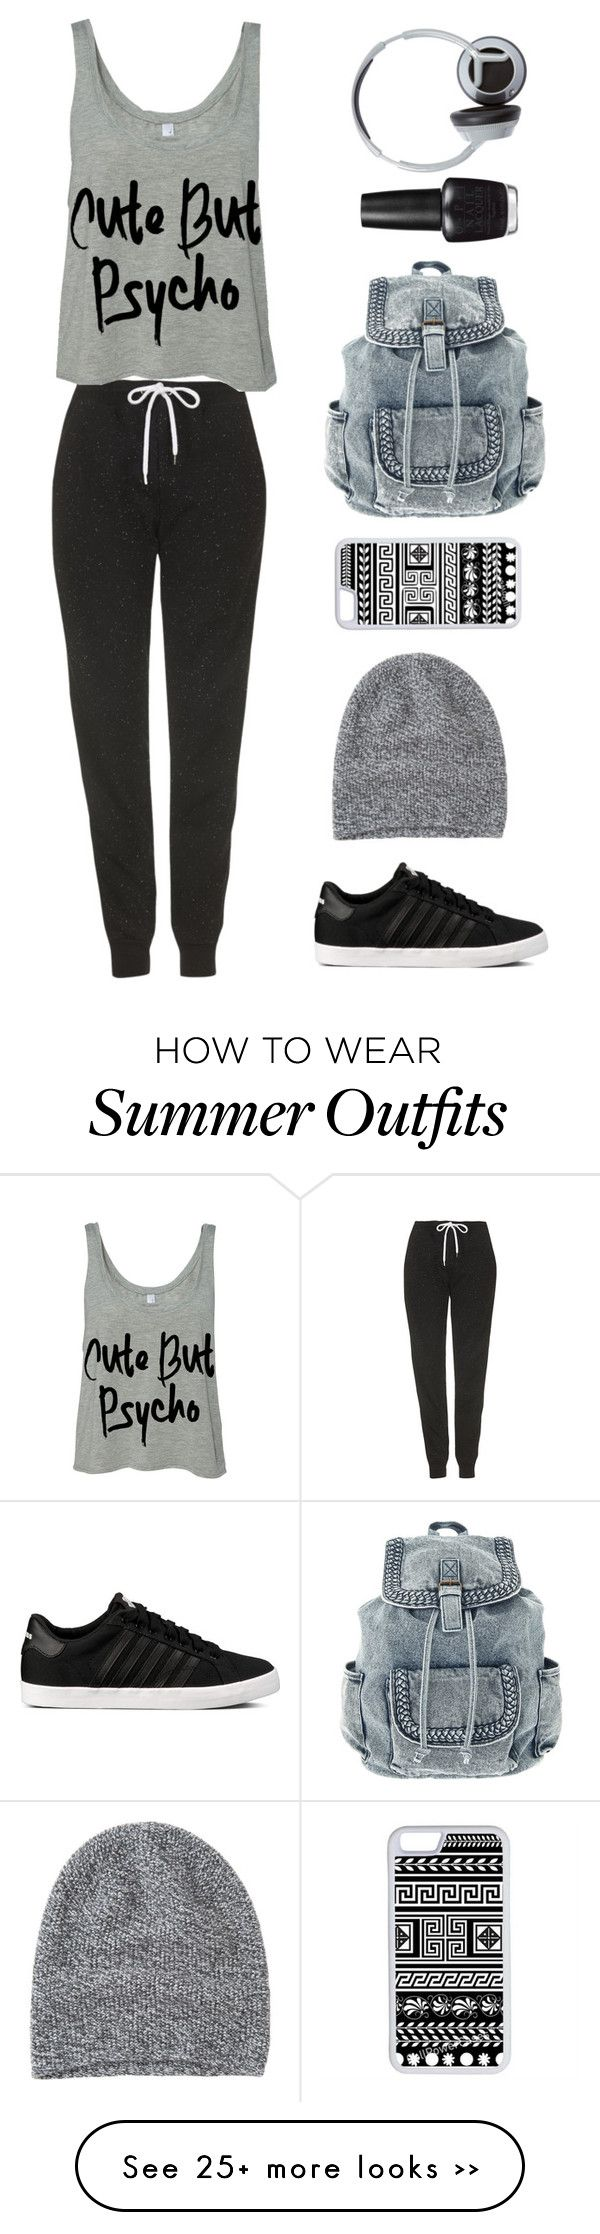 Cute but psycho by sasha06527 on Polyvore featuring Topshop, Toast, CellPowerCases, OPI and Nixon